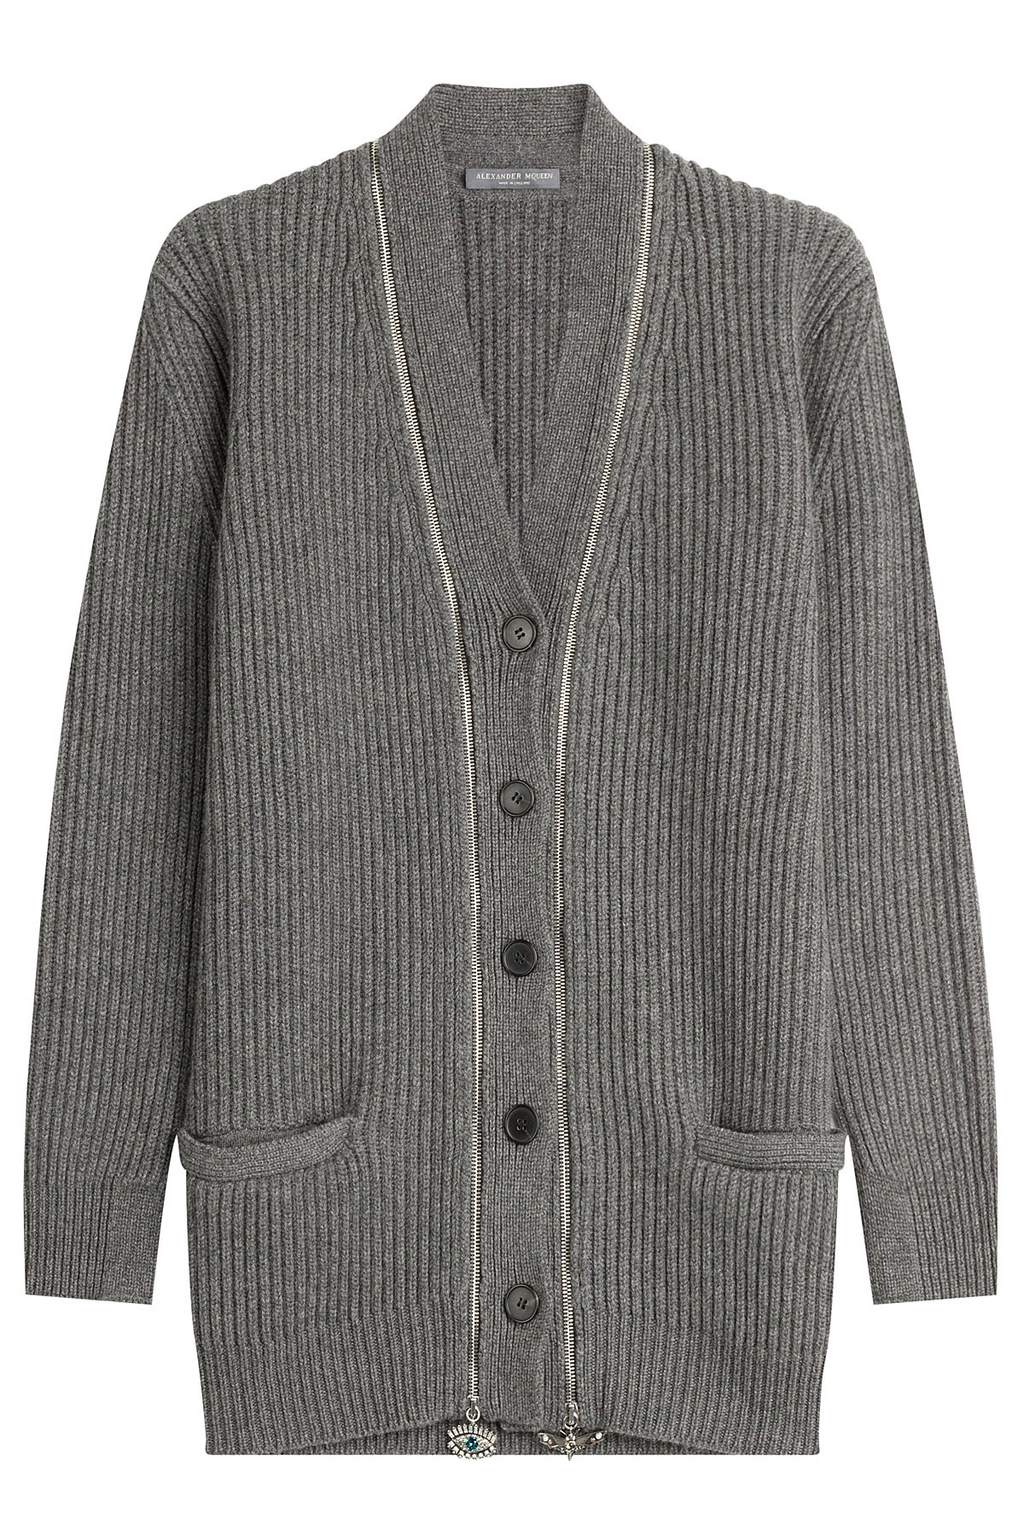 Cashmere Cardigan With Embellished Zippers Grey - neckline: v-neck; pattern: plain; predominant colour: mid grey; occasions: casual; length: standard; style: standard; fit: standard fit; fibres: cashmere - 100%; sleeve length: long sleeve; sleeve style: standard; texture group: knits/crochet; pattern type: knitted - fine stitch; wardrobe: investment; season: a/w 2016